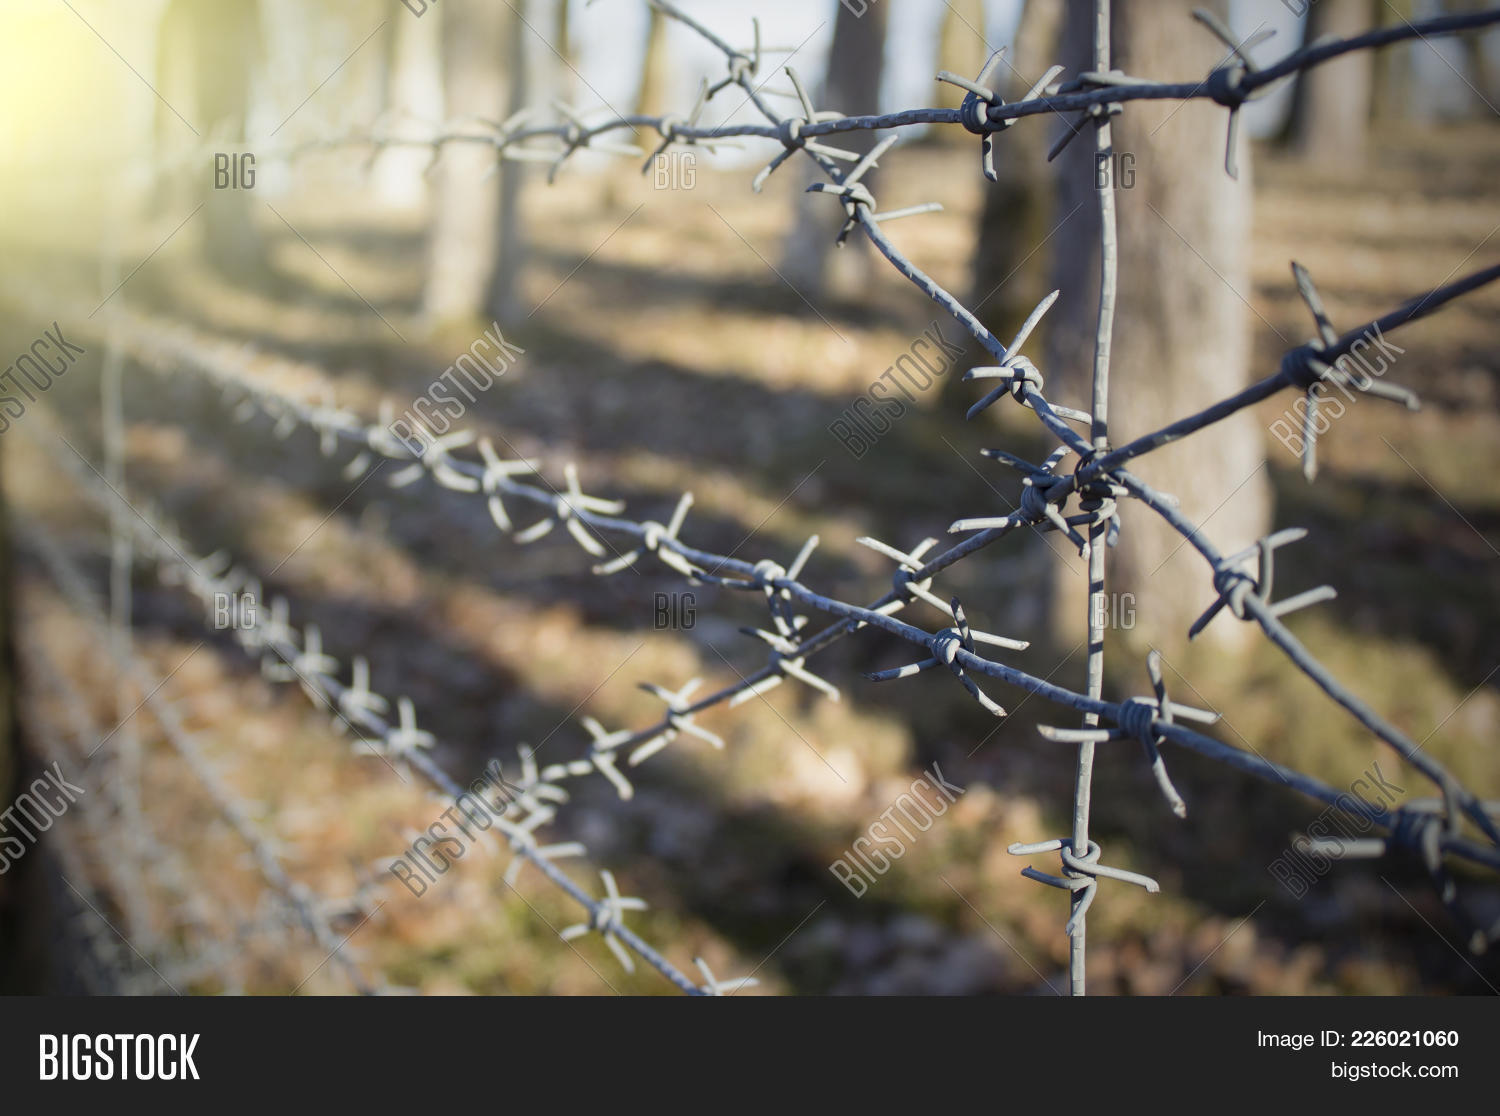 Barbed Wire Image & Photo (Free Trial)   Bigstock